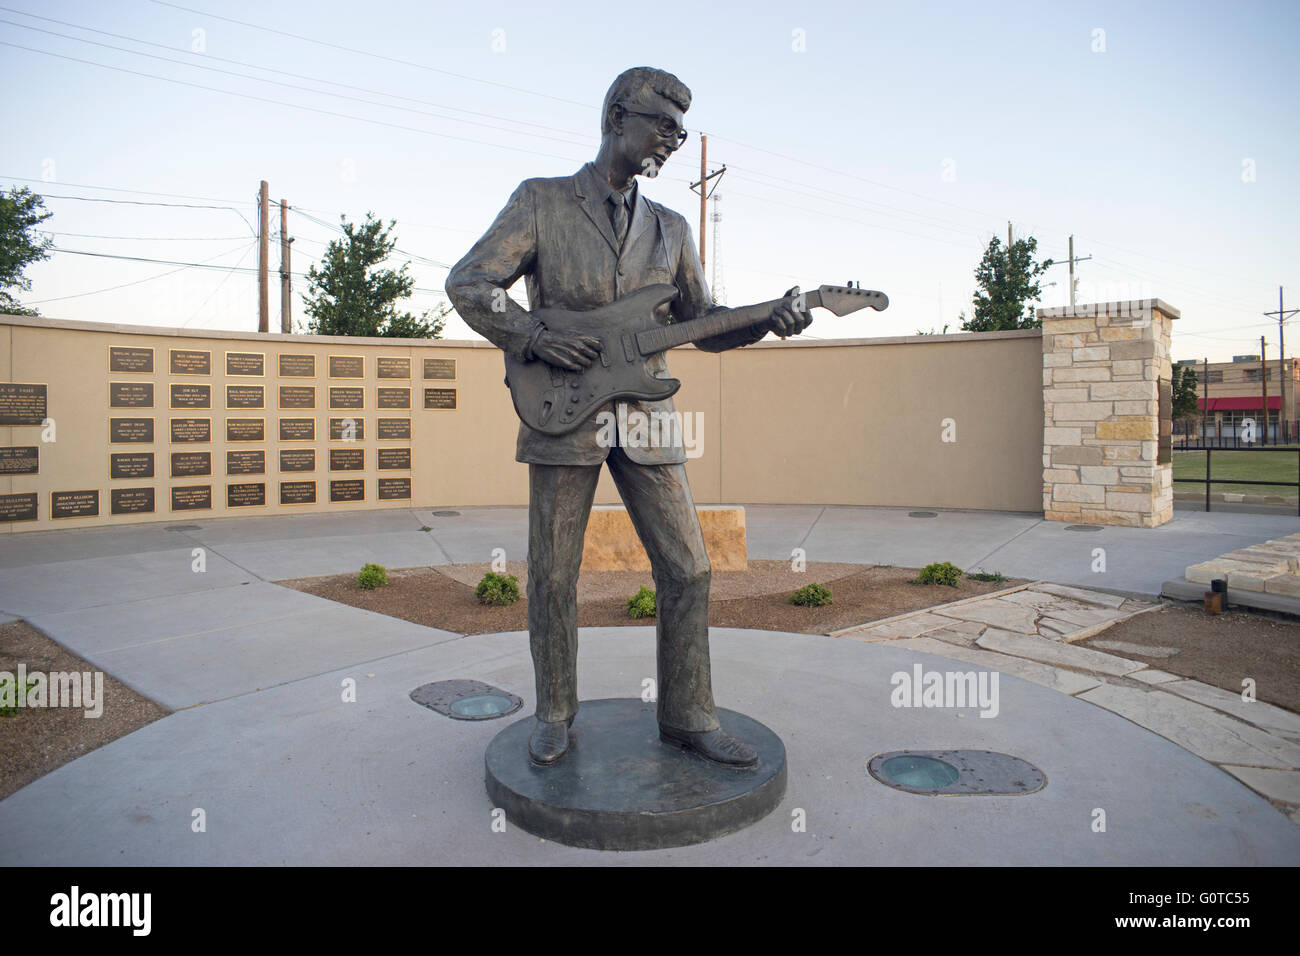 Statue of Buddy Holly in Lubbock, Texas. Charles Hardin Holley (September 7, 1936 – February 3, 1959), known as - Stock Image